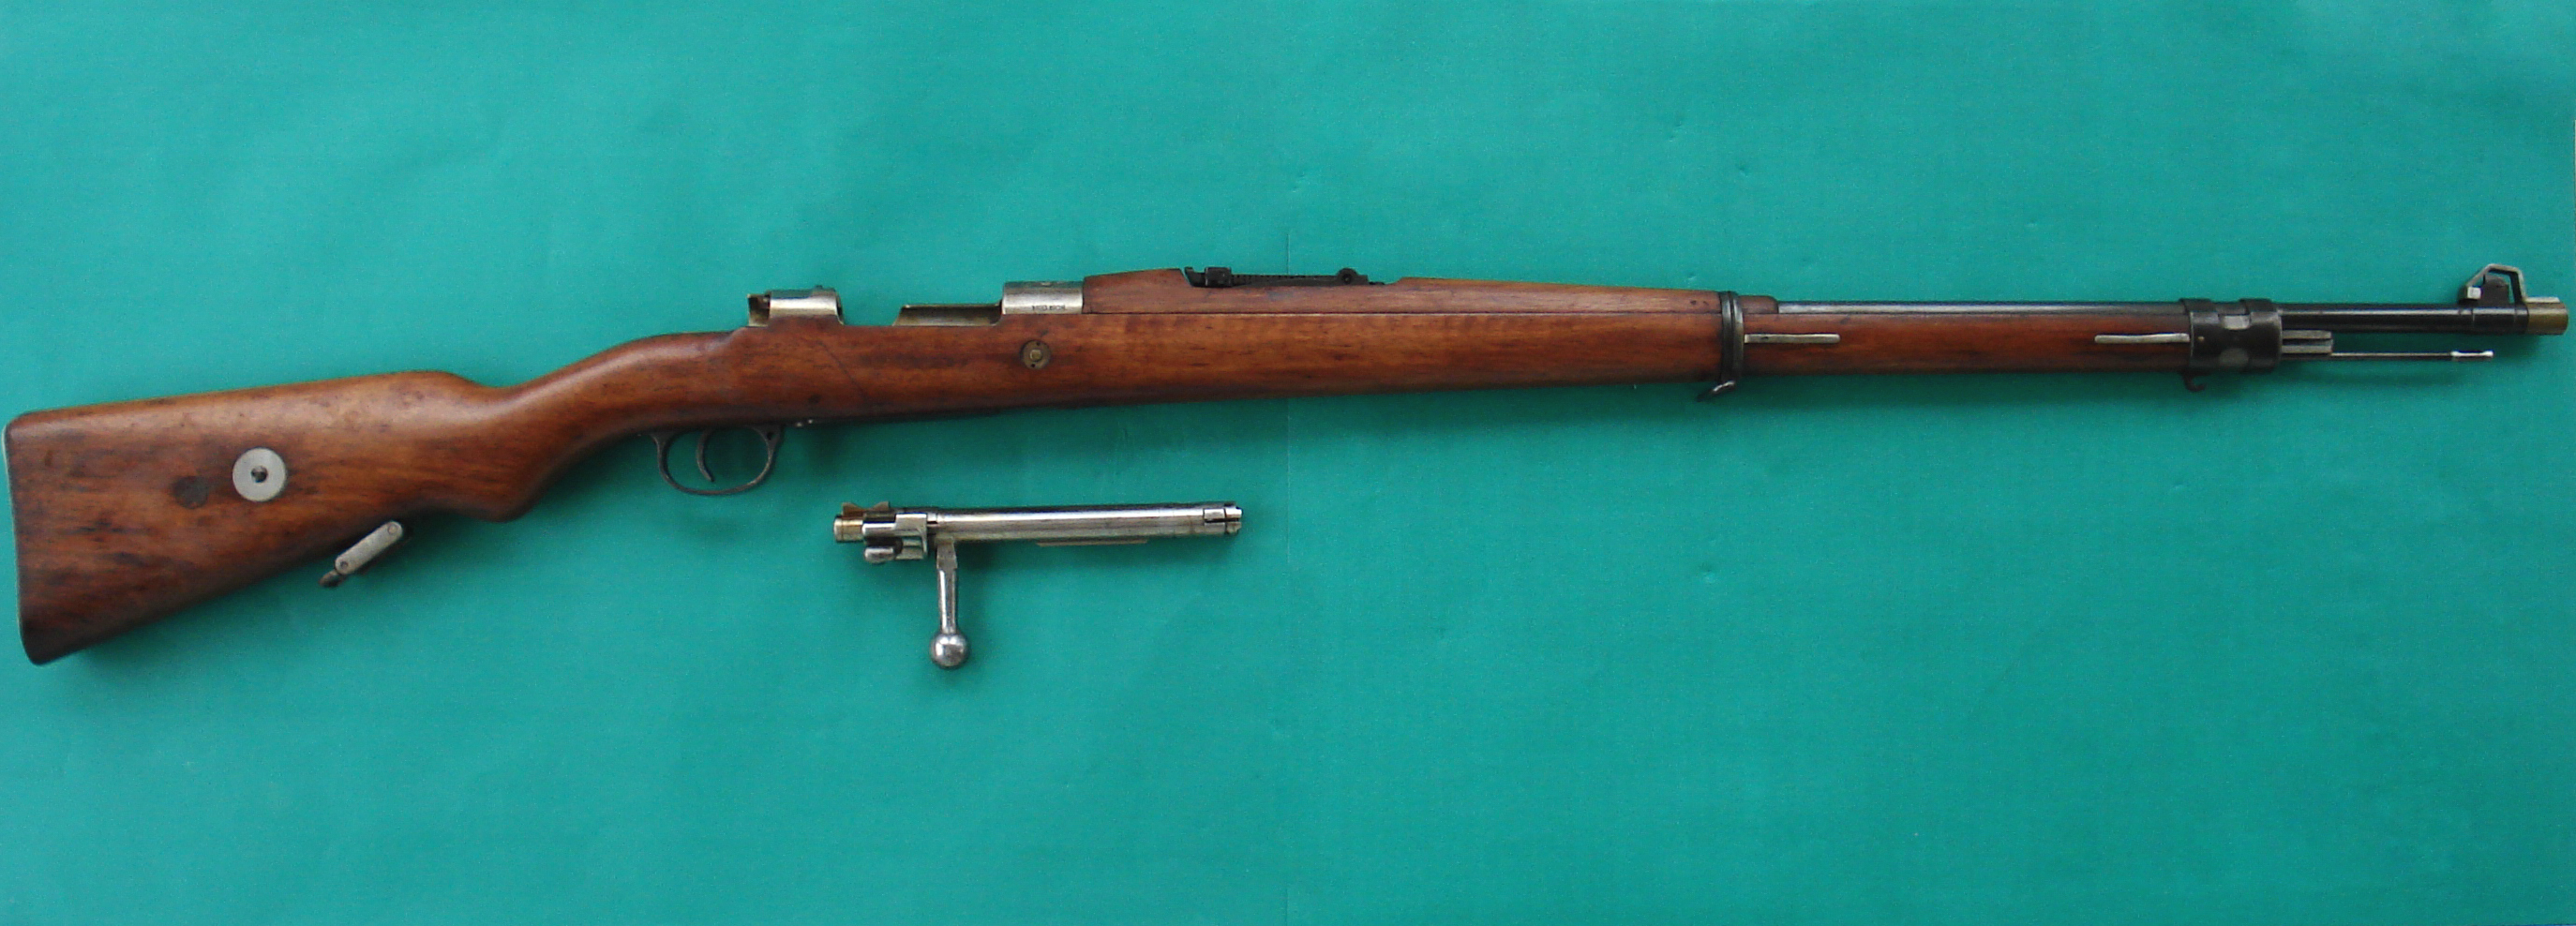 Galerry homemade bolt action rifle